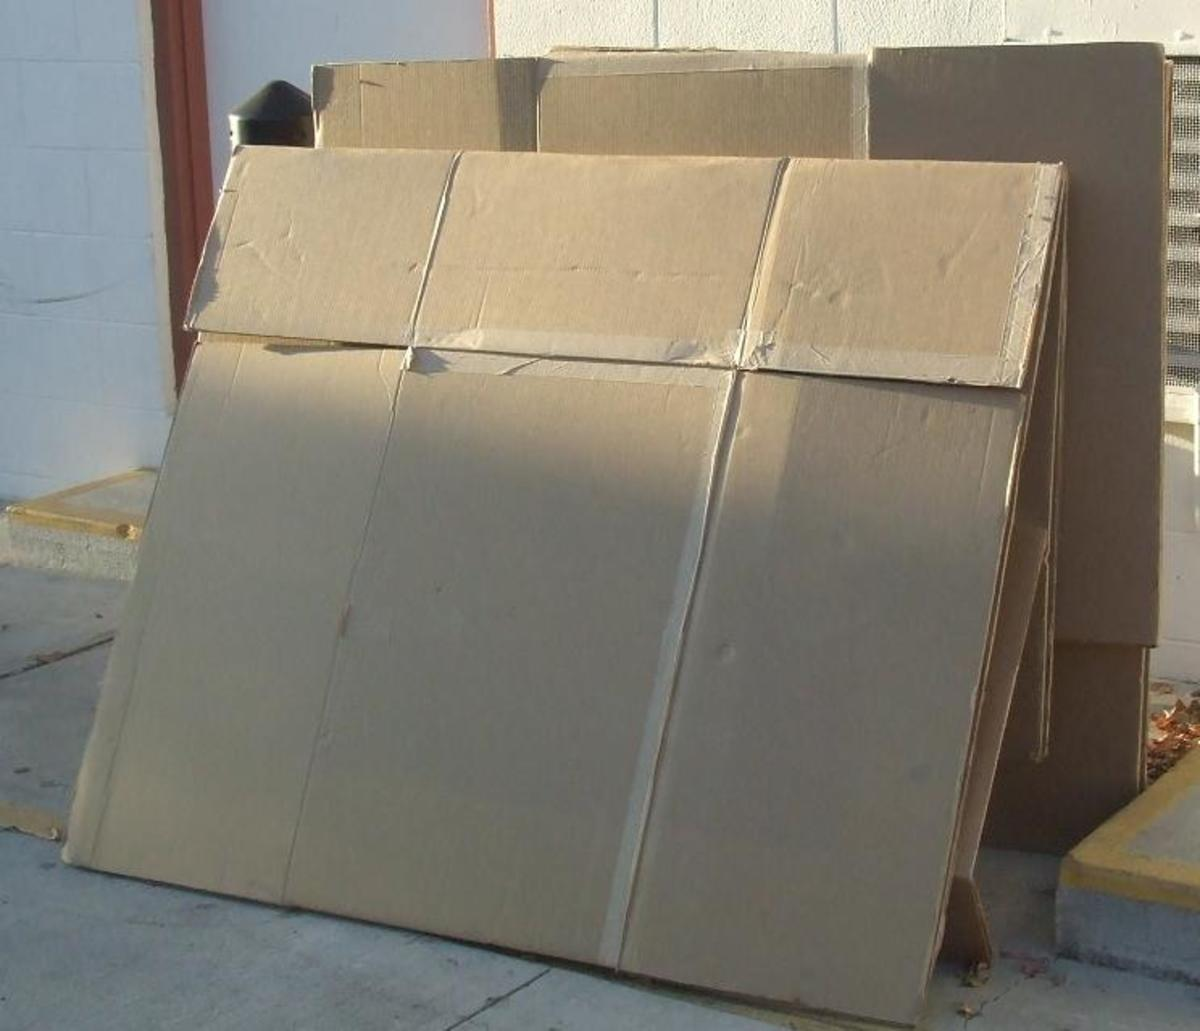 Cardboard boxes, flattened, ready for repurposing!